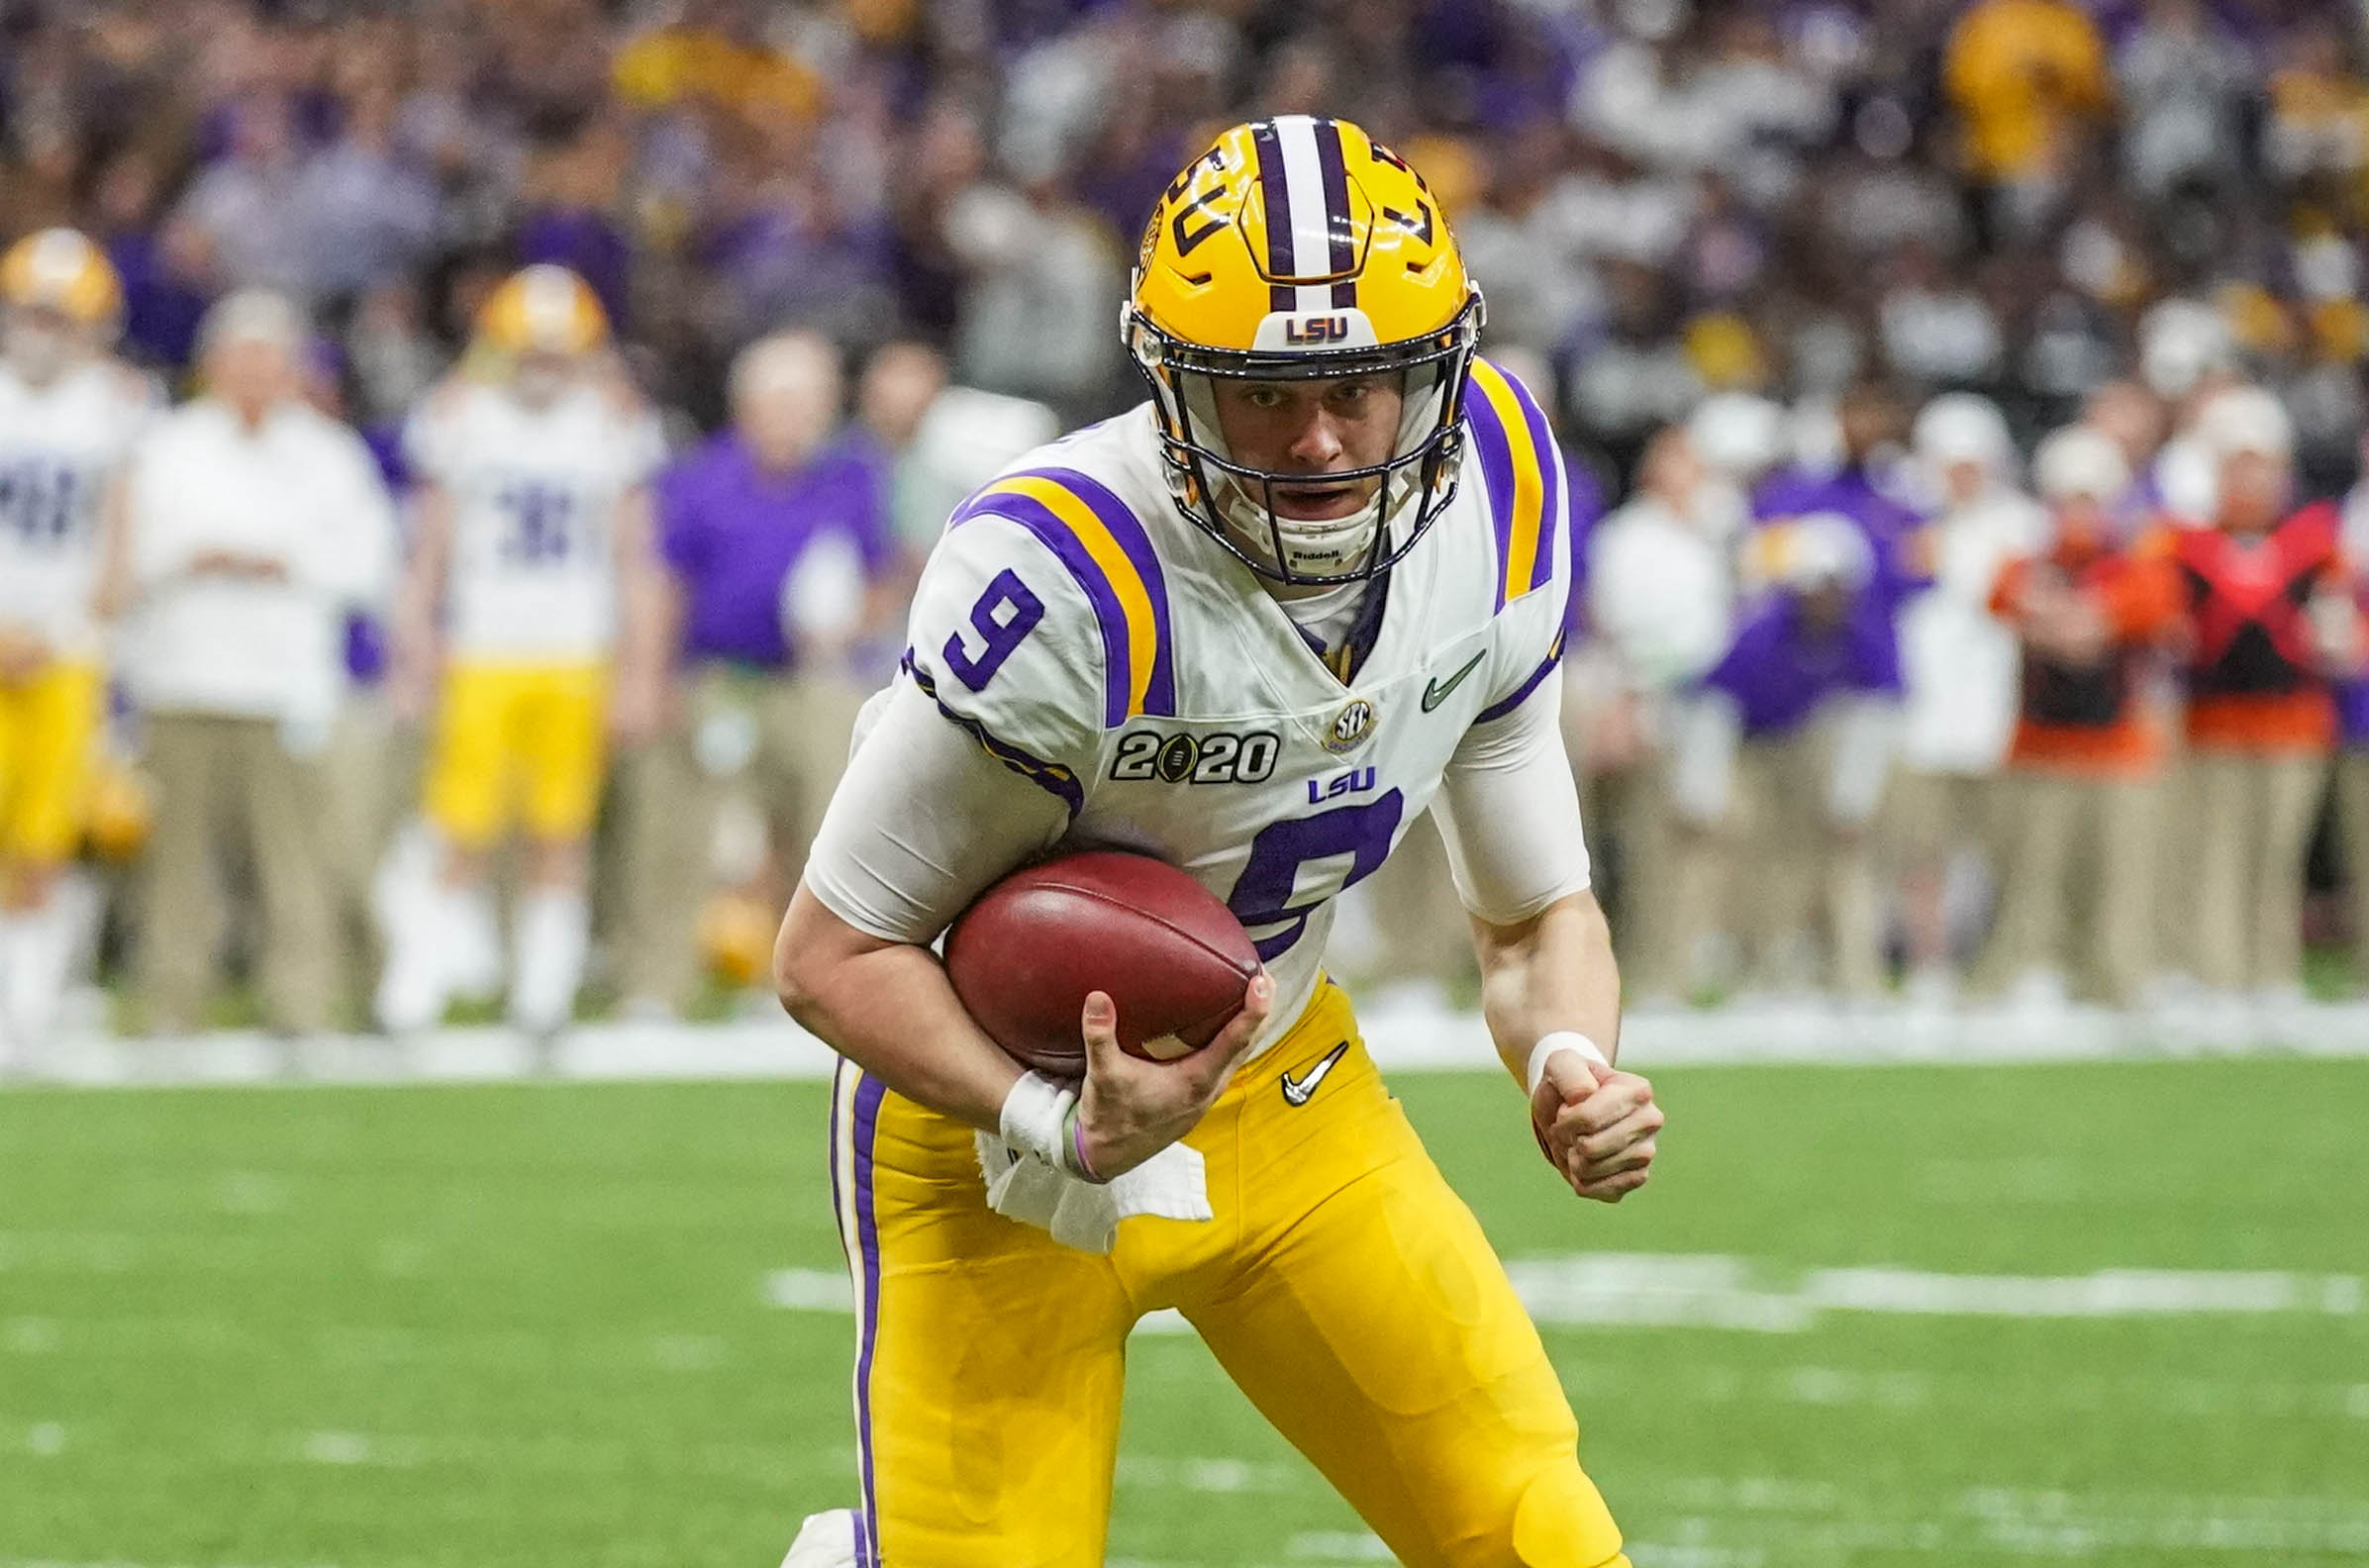 A Dream Season Places Lsu S 2019 National Champs On College Football S All Time Throne